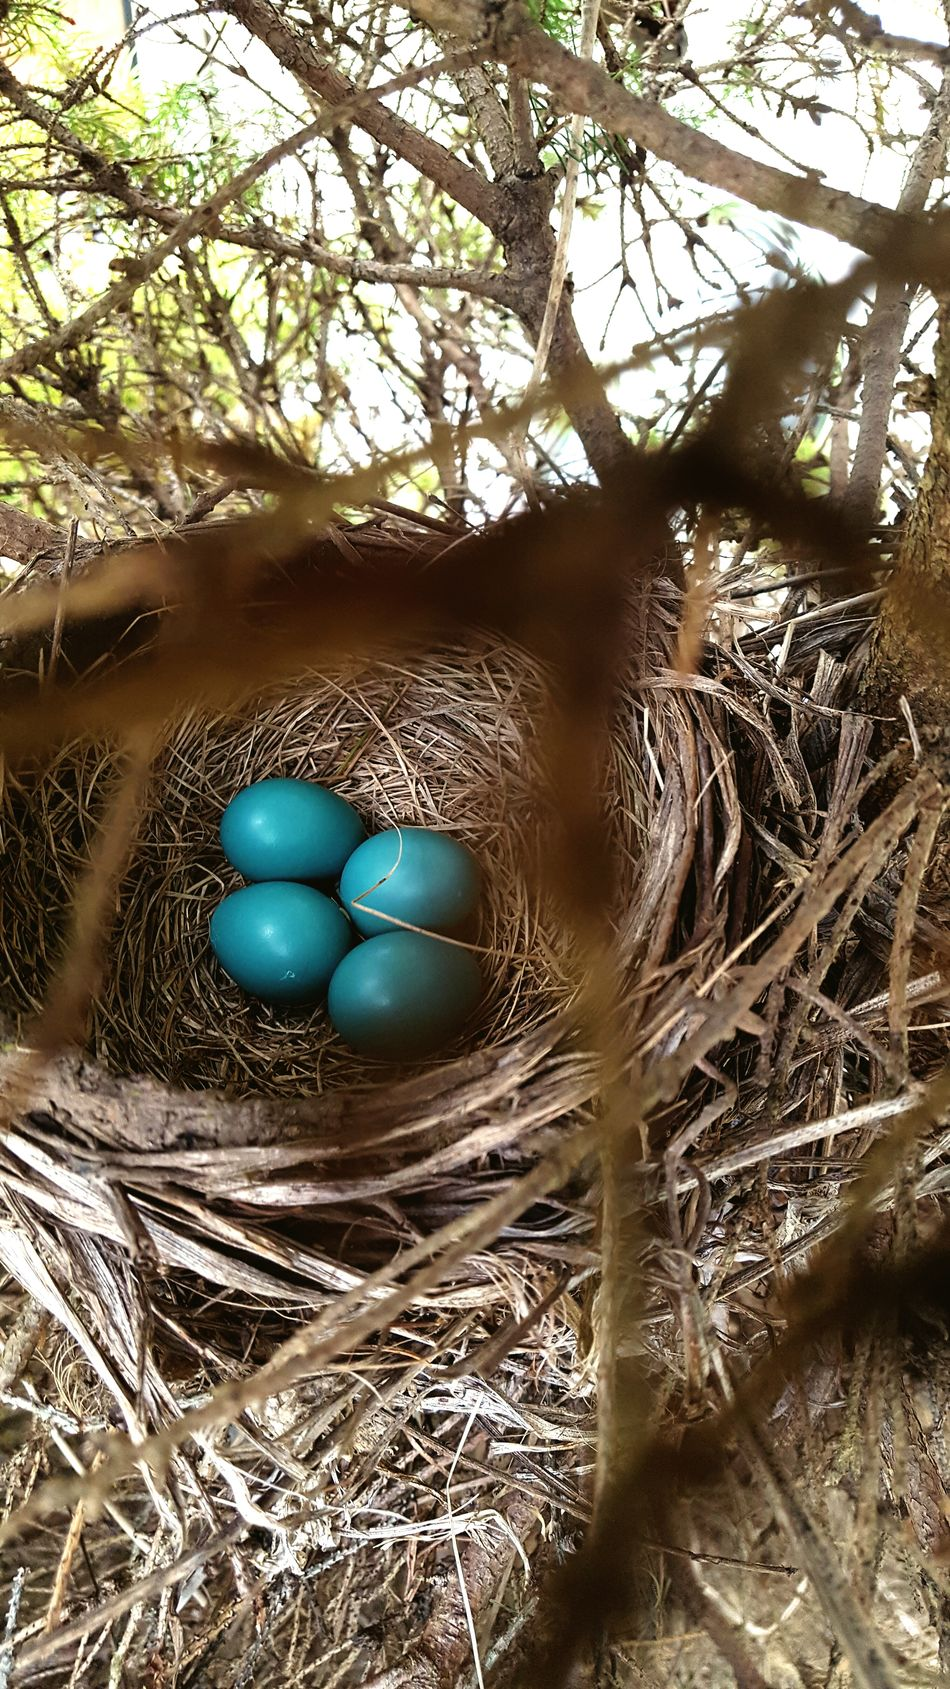 Robin Eggs Robin Robins Bird Birds Bird Photography Birds_collection Birds Of EyeEm  Birdeggs Birds Nest Birds Wildlife Birds🐦⛅ Bird Watching Robin Blue Blue Egg Blue Eggs Blue Eggshell Robin Nest